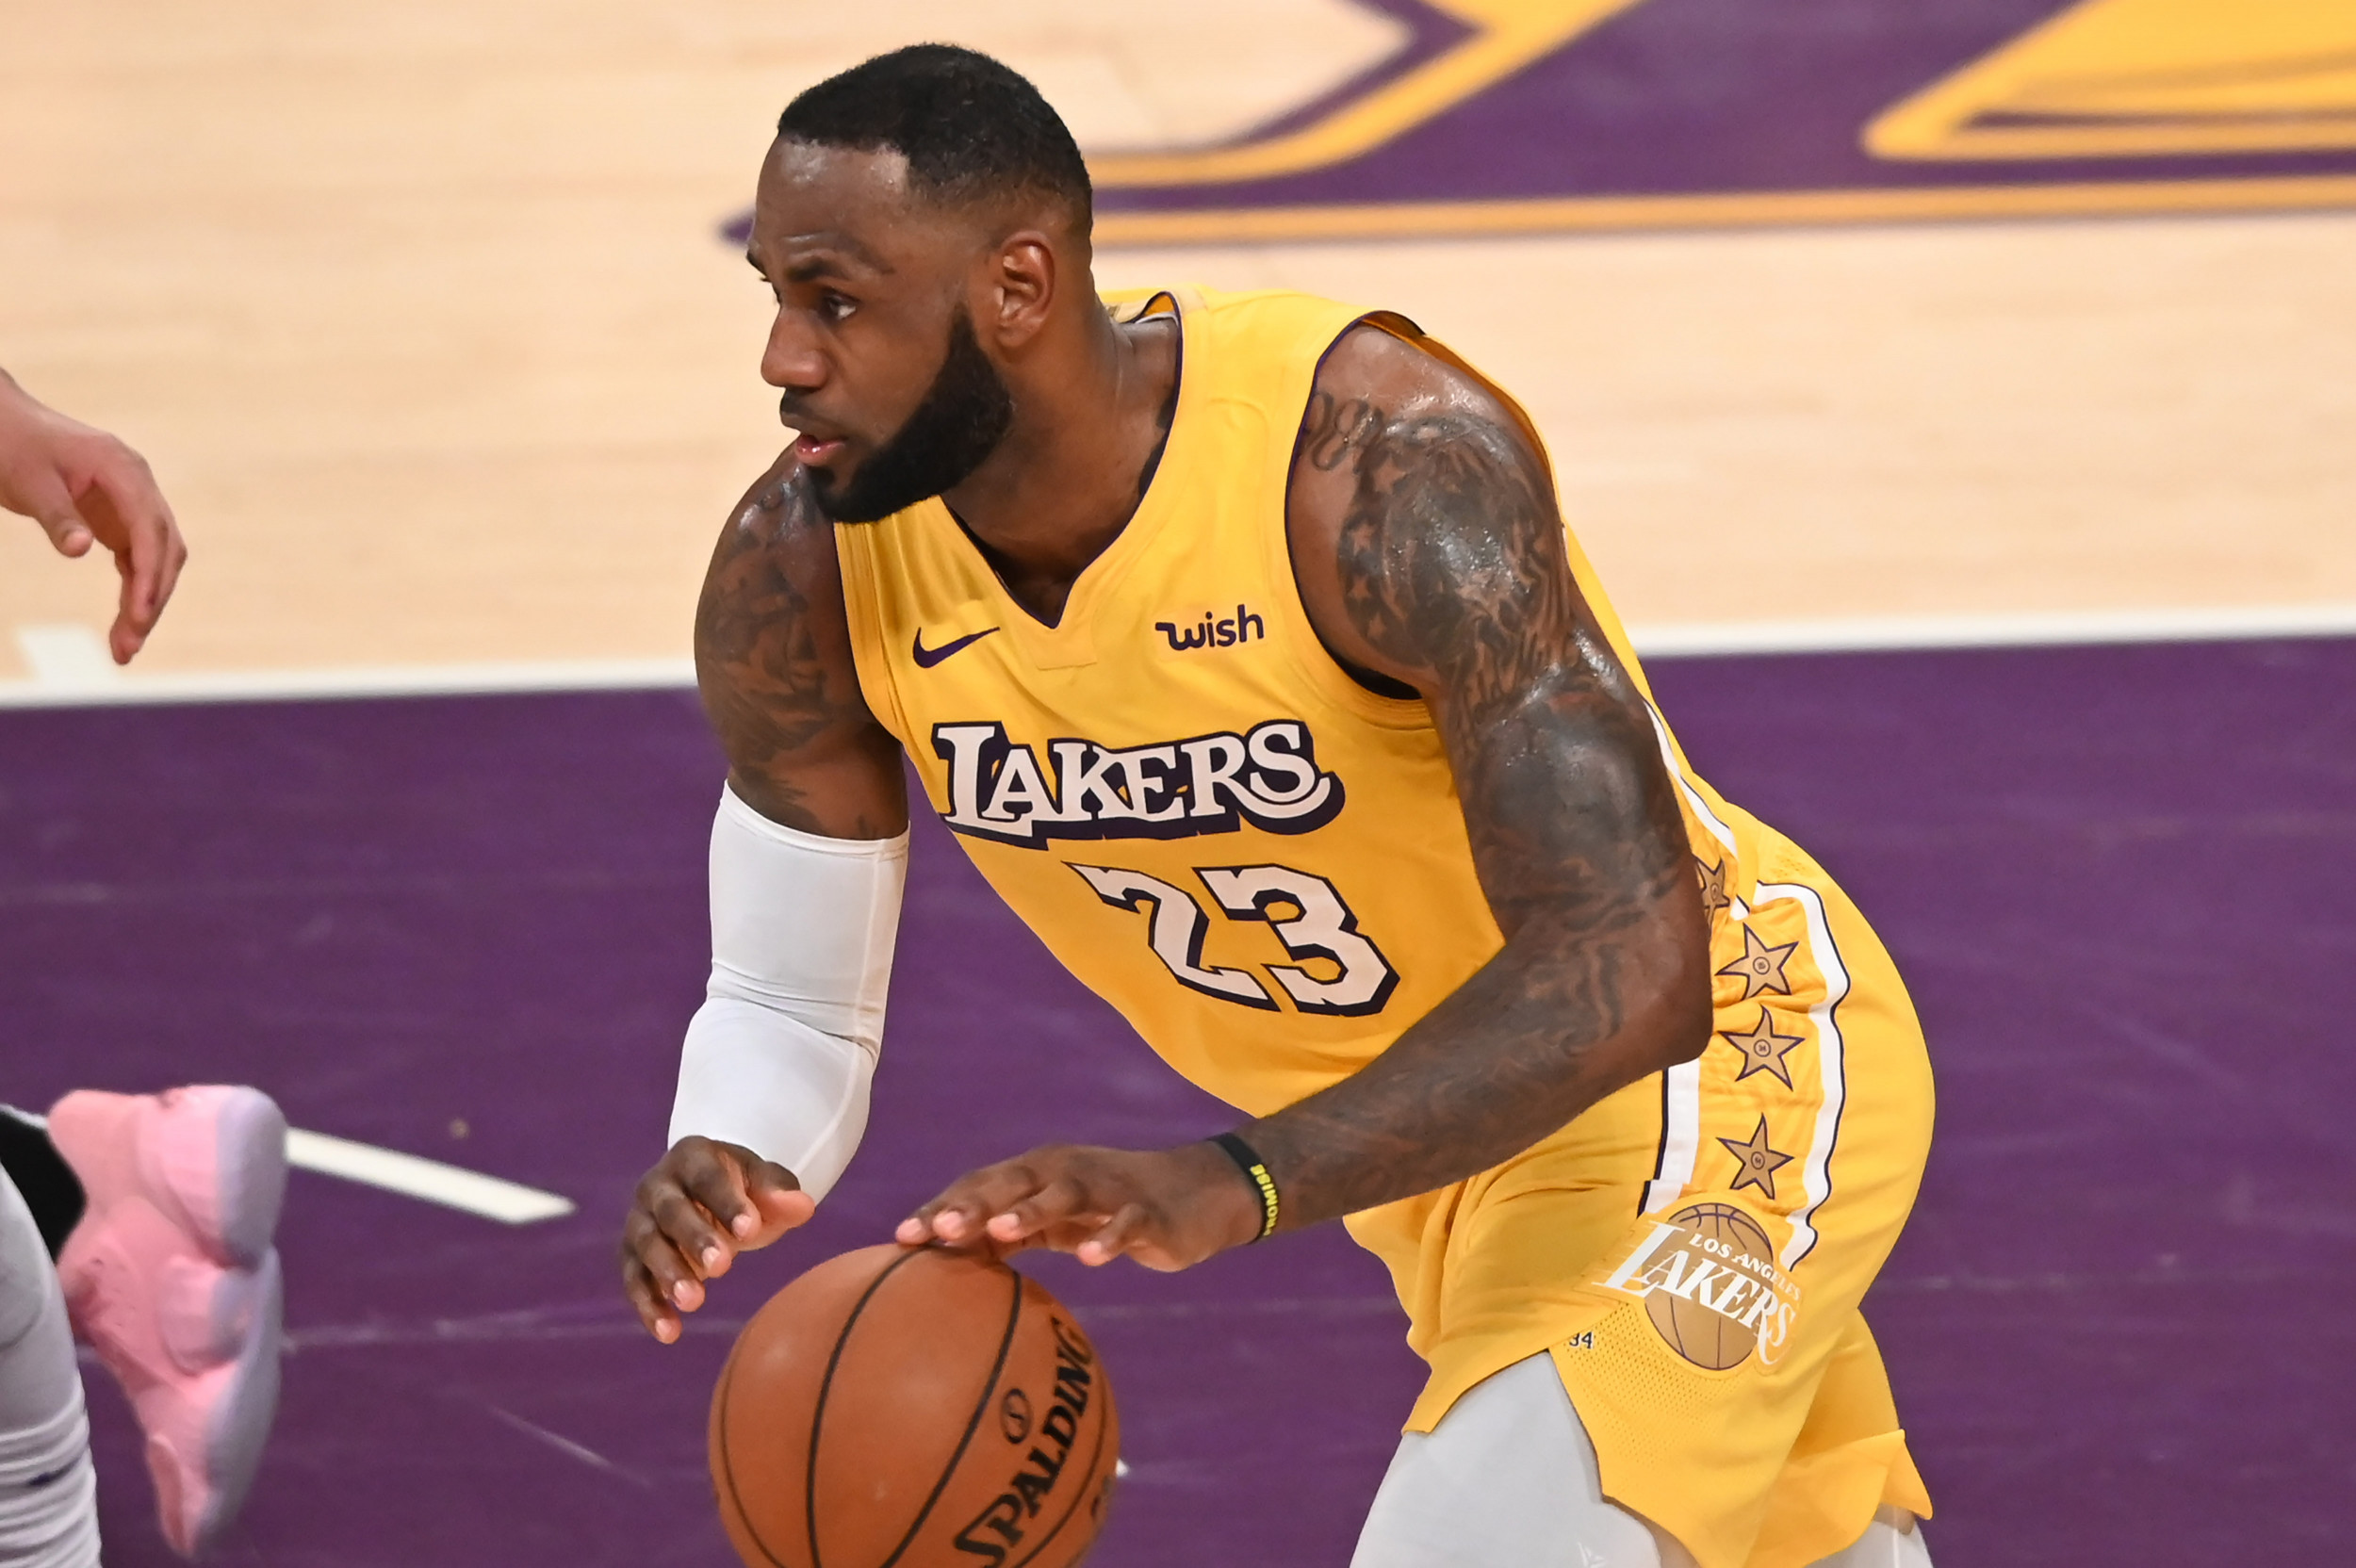 Lakers appear amazing new LeBron James injury update